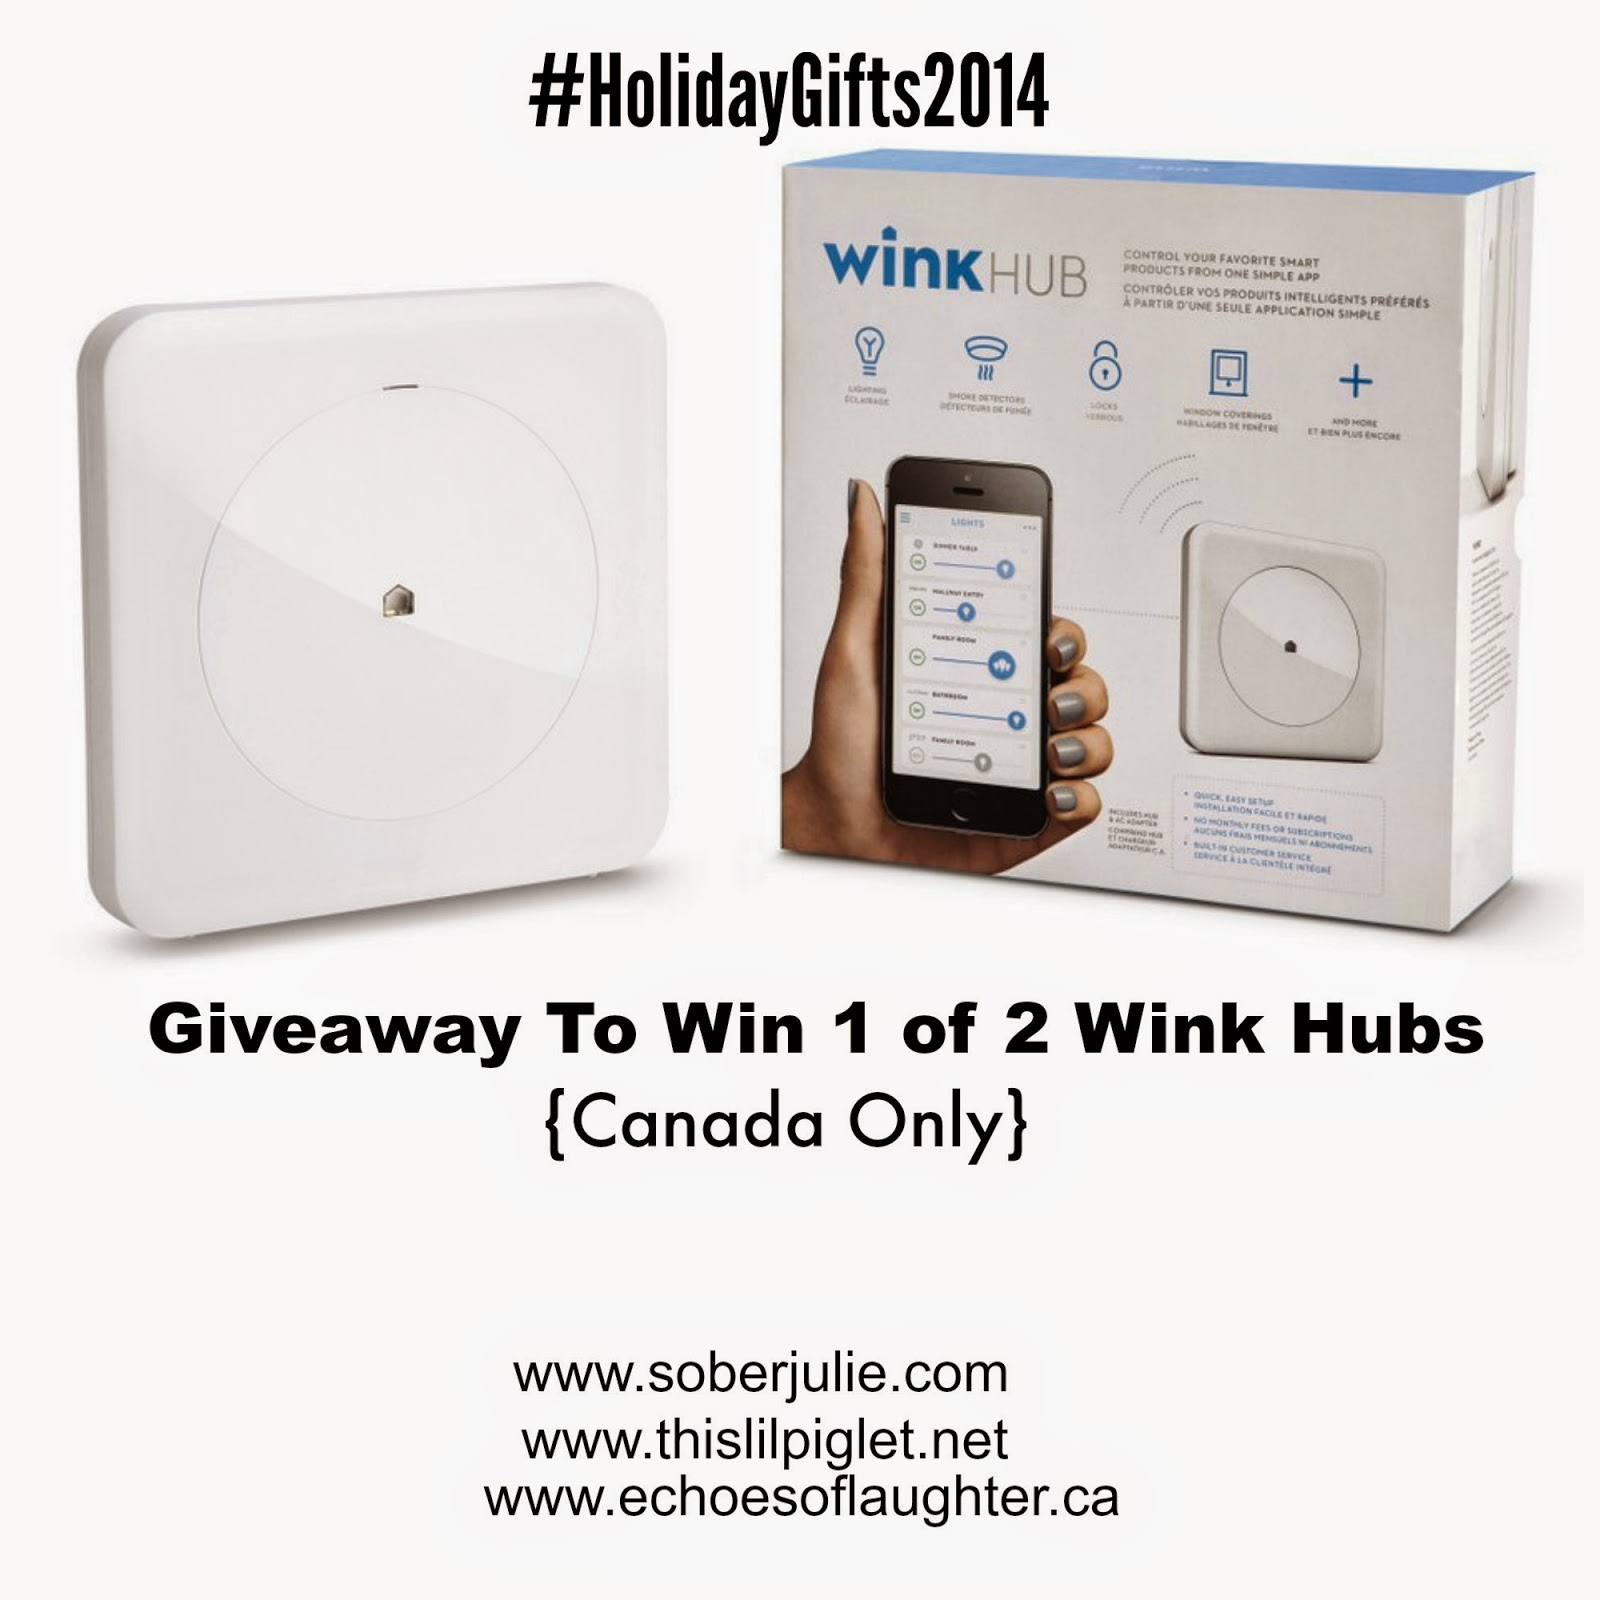 Home Depot Holidays and a Giveaway! #HolidayGifts2014 - Sober Julie